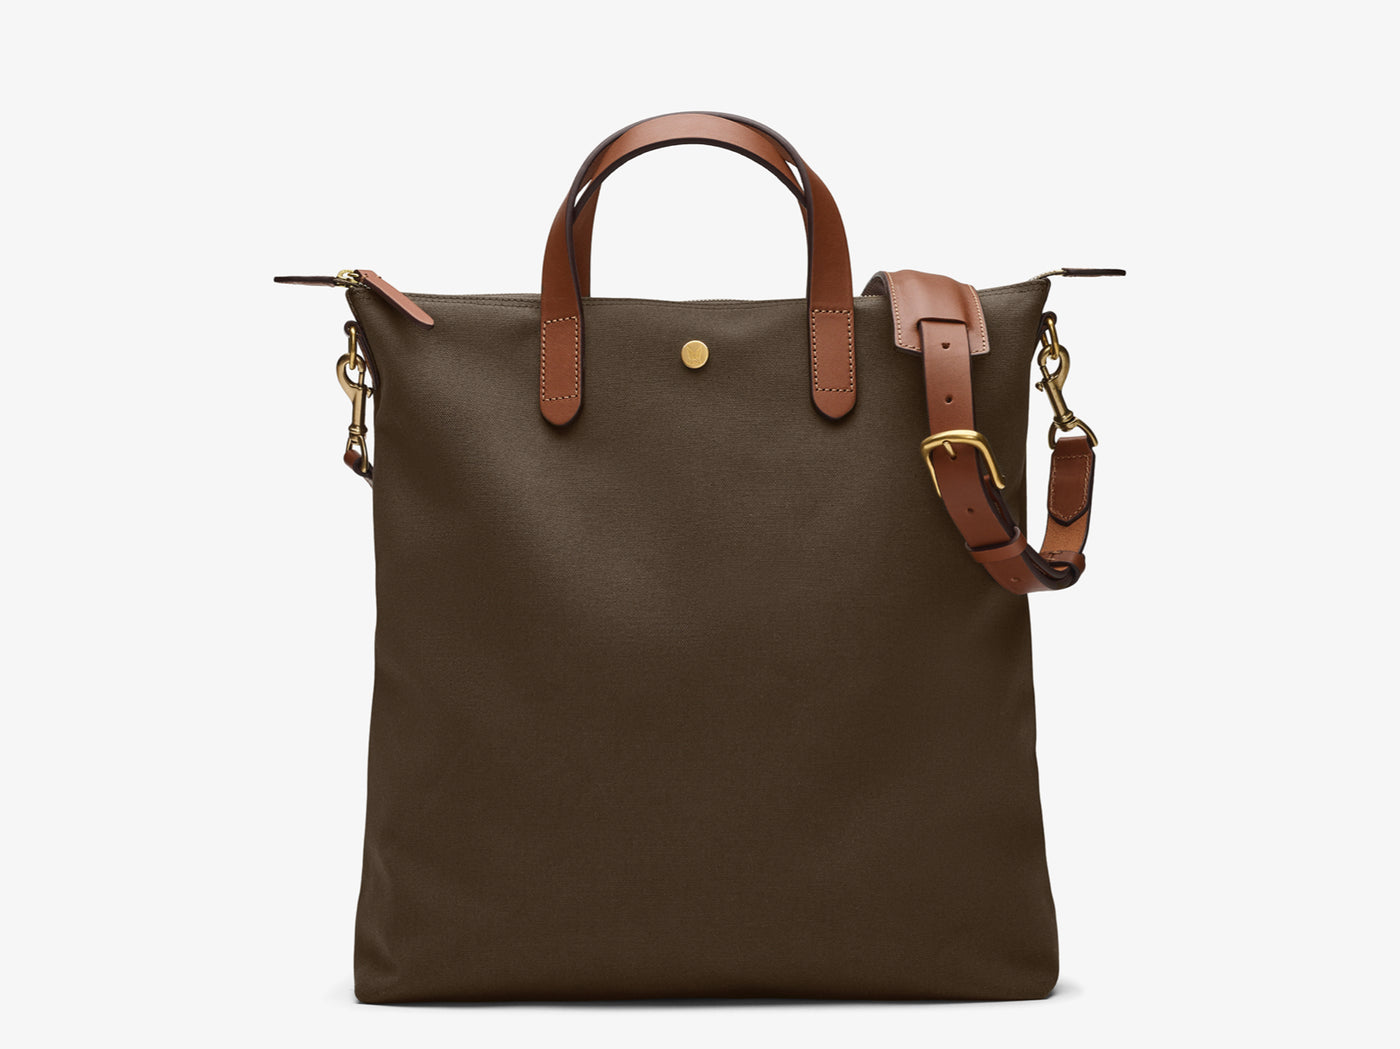 M/S Shopper - Army/Cuoio